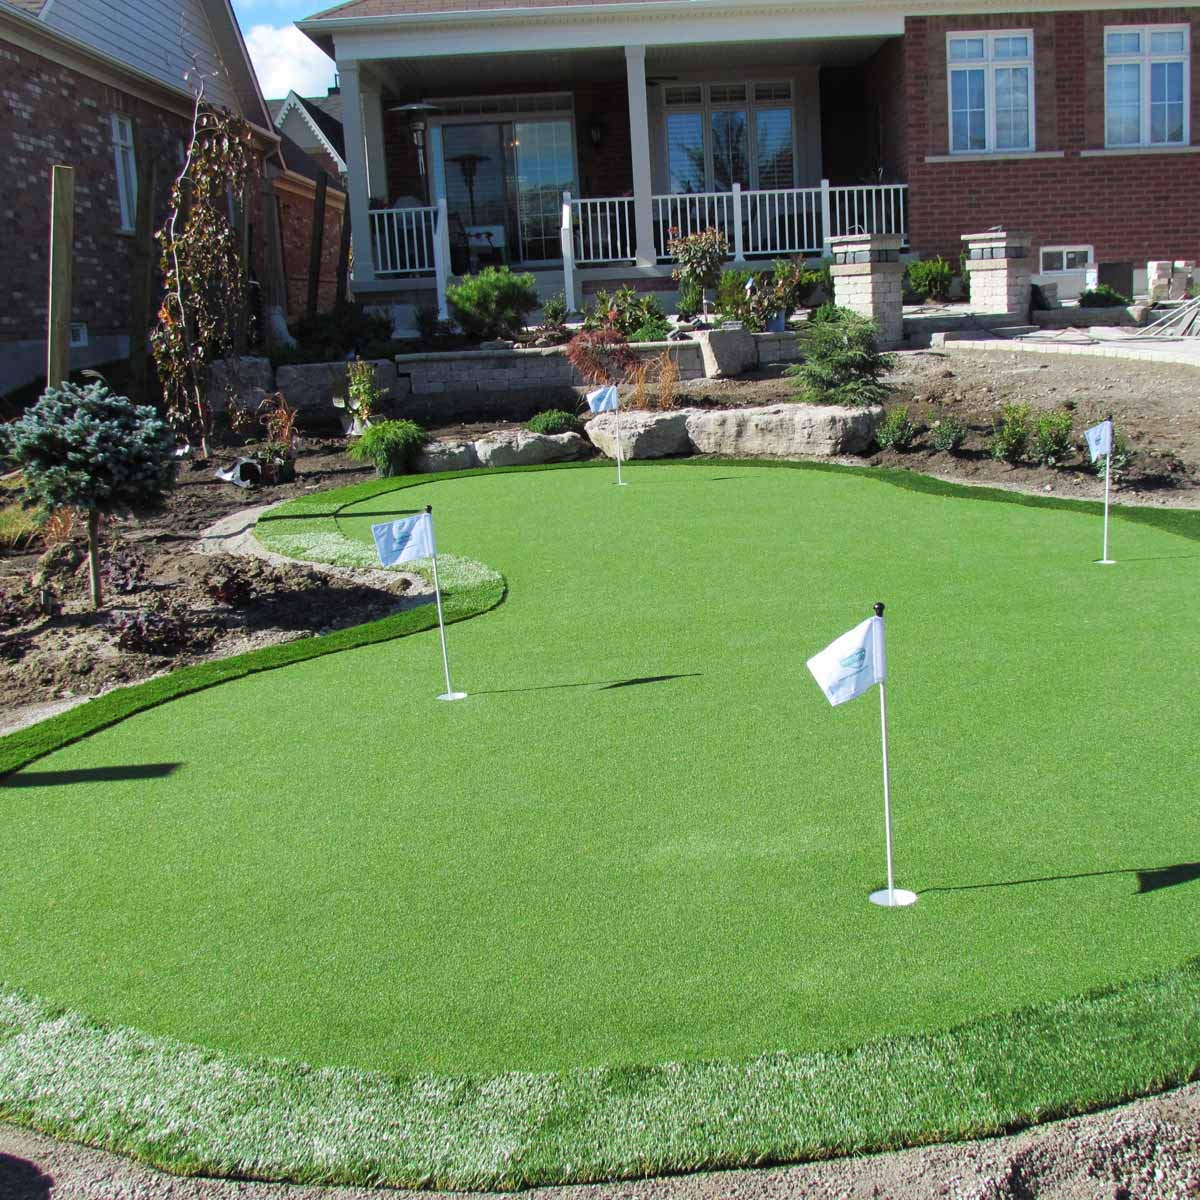 15' Golf Putting Green Artificial Turf Grass Roll (15' x 20' = 300 Sq. Ft.)